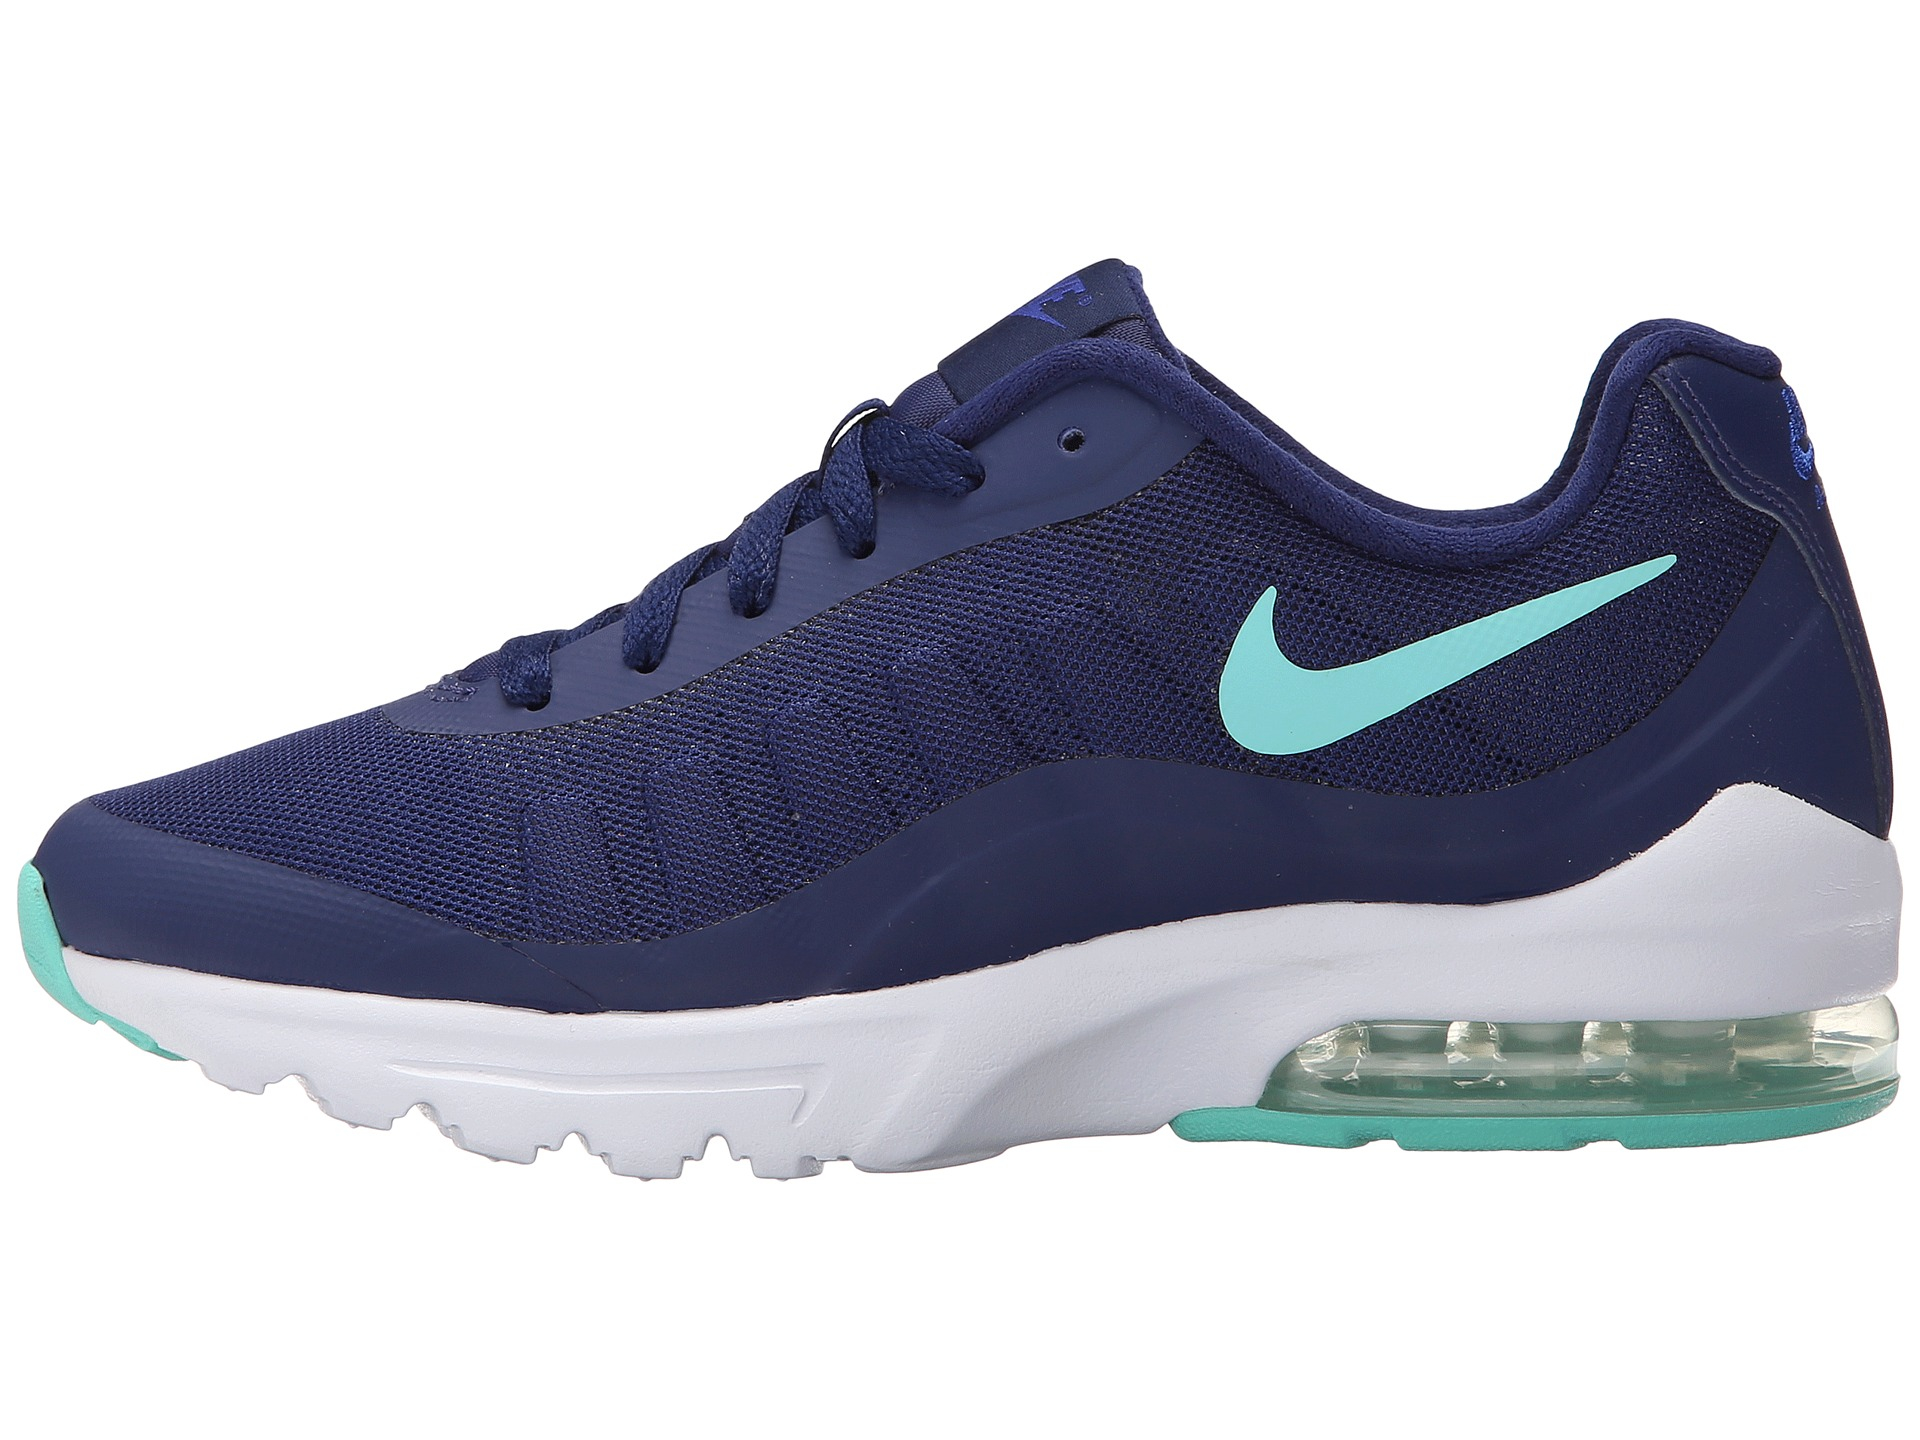 9f8f8271a9 ... inexpensive lyst nike air max invigor in blue for men a3945 f895f